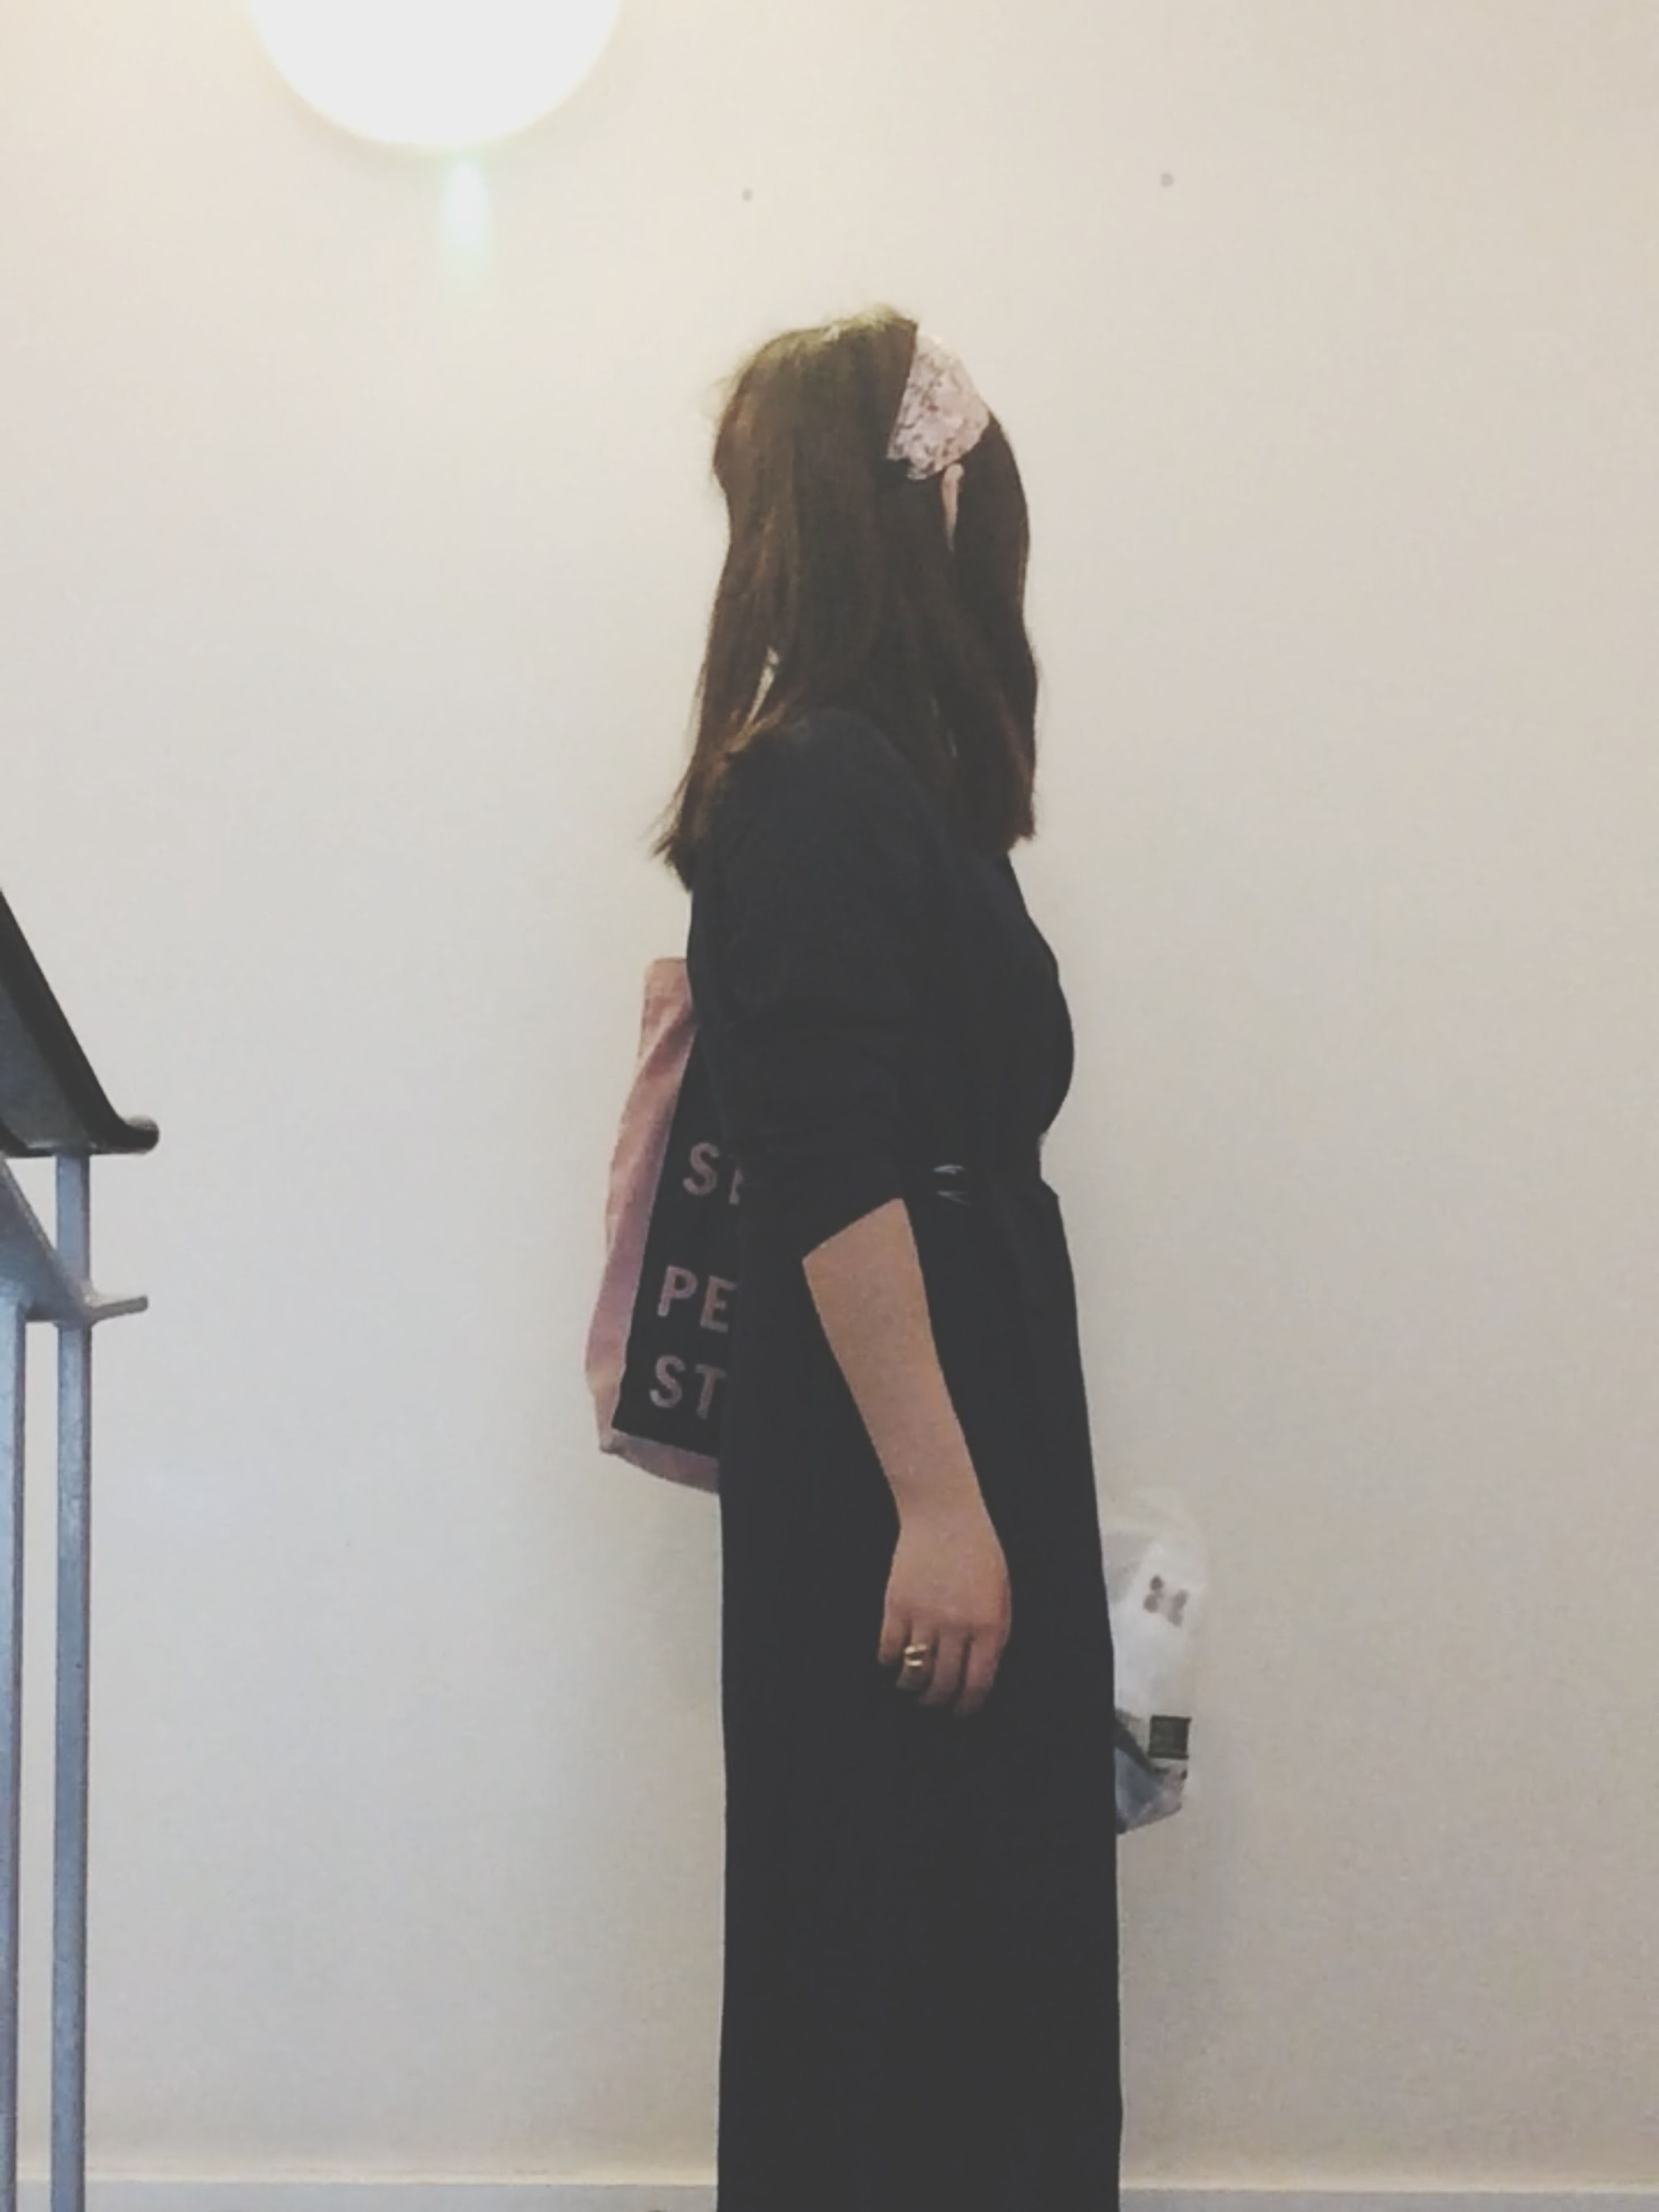 indoors, standing, lifestyles, wall - building feature, young adult, three quarter length, leisure activity, waist up, young women, casual clothing, front view, person, wall, long hair, home interior, obscured face, architecture, rear view